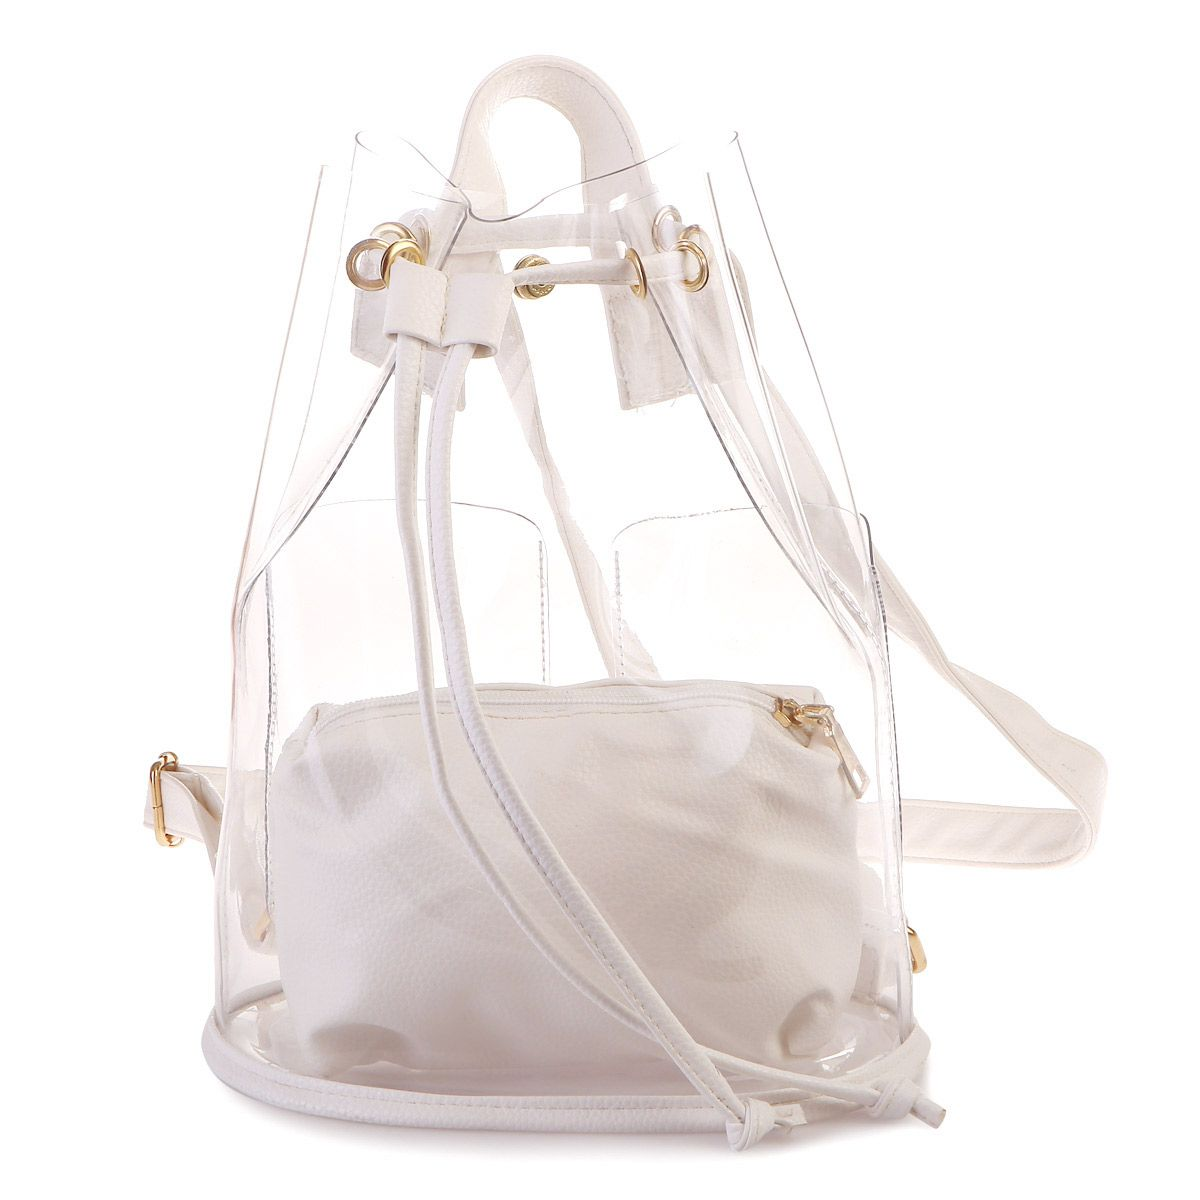 sac dos blanc transparent avec pochette int rieur femme pas cher la modeuse. Black Bedroom Furniture Sets. Home Design Ideas